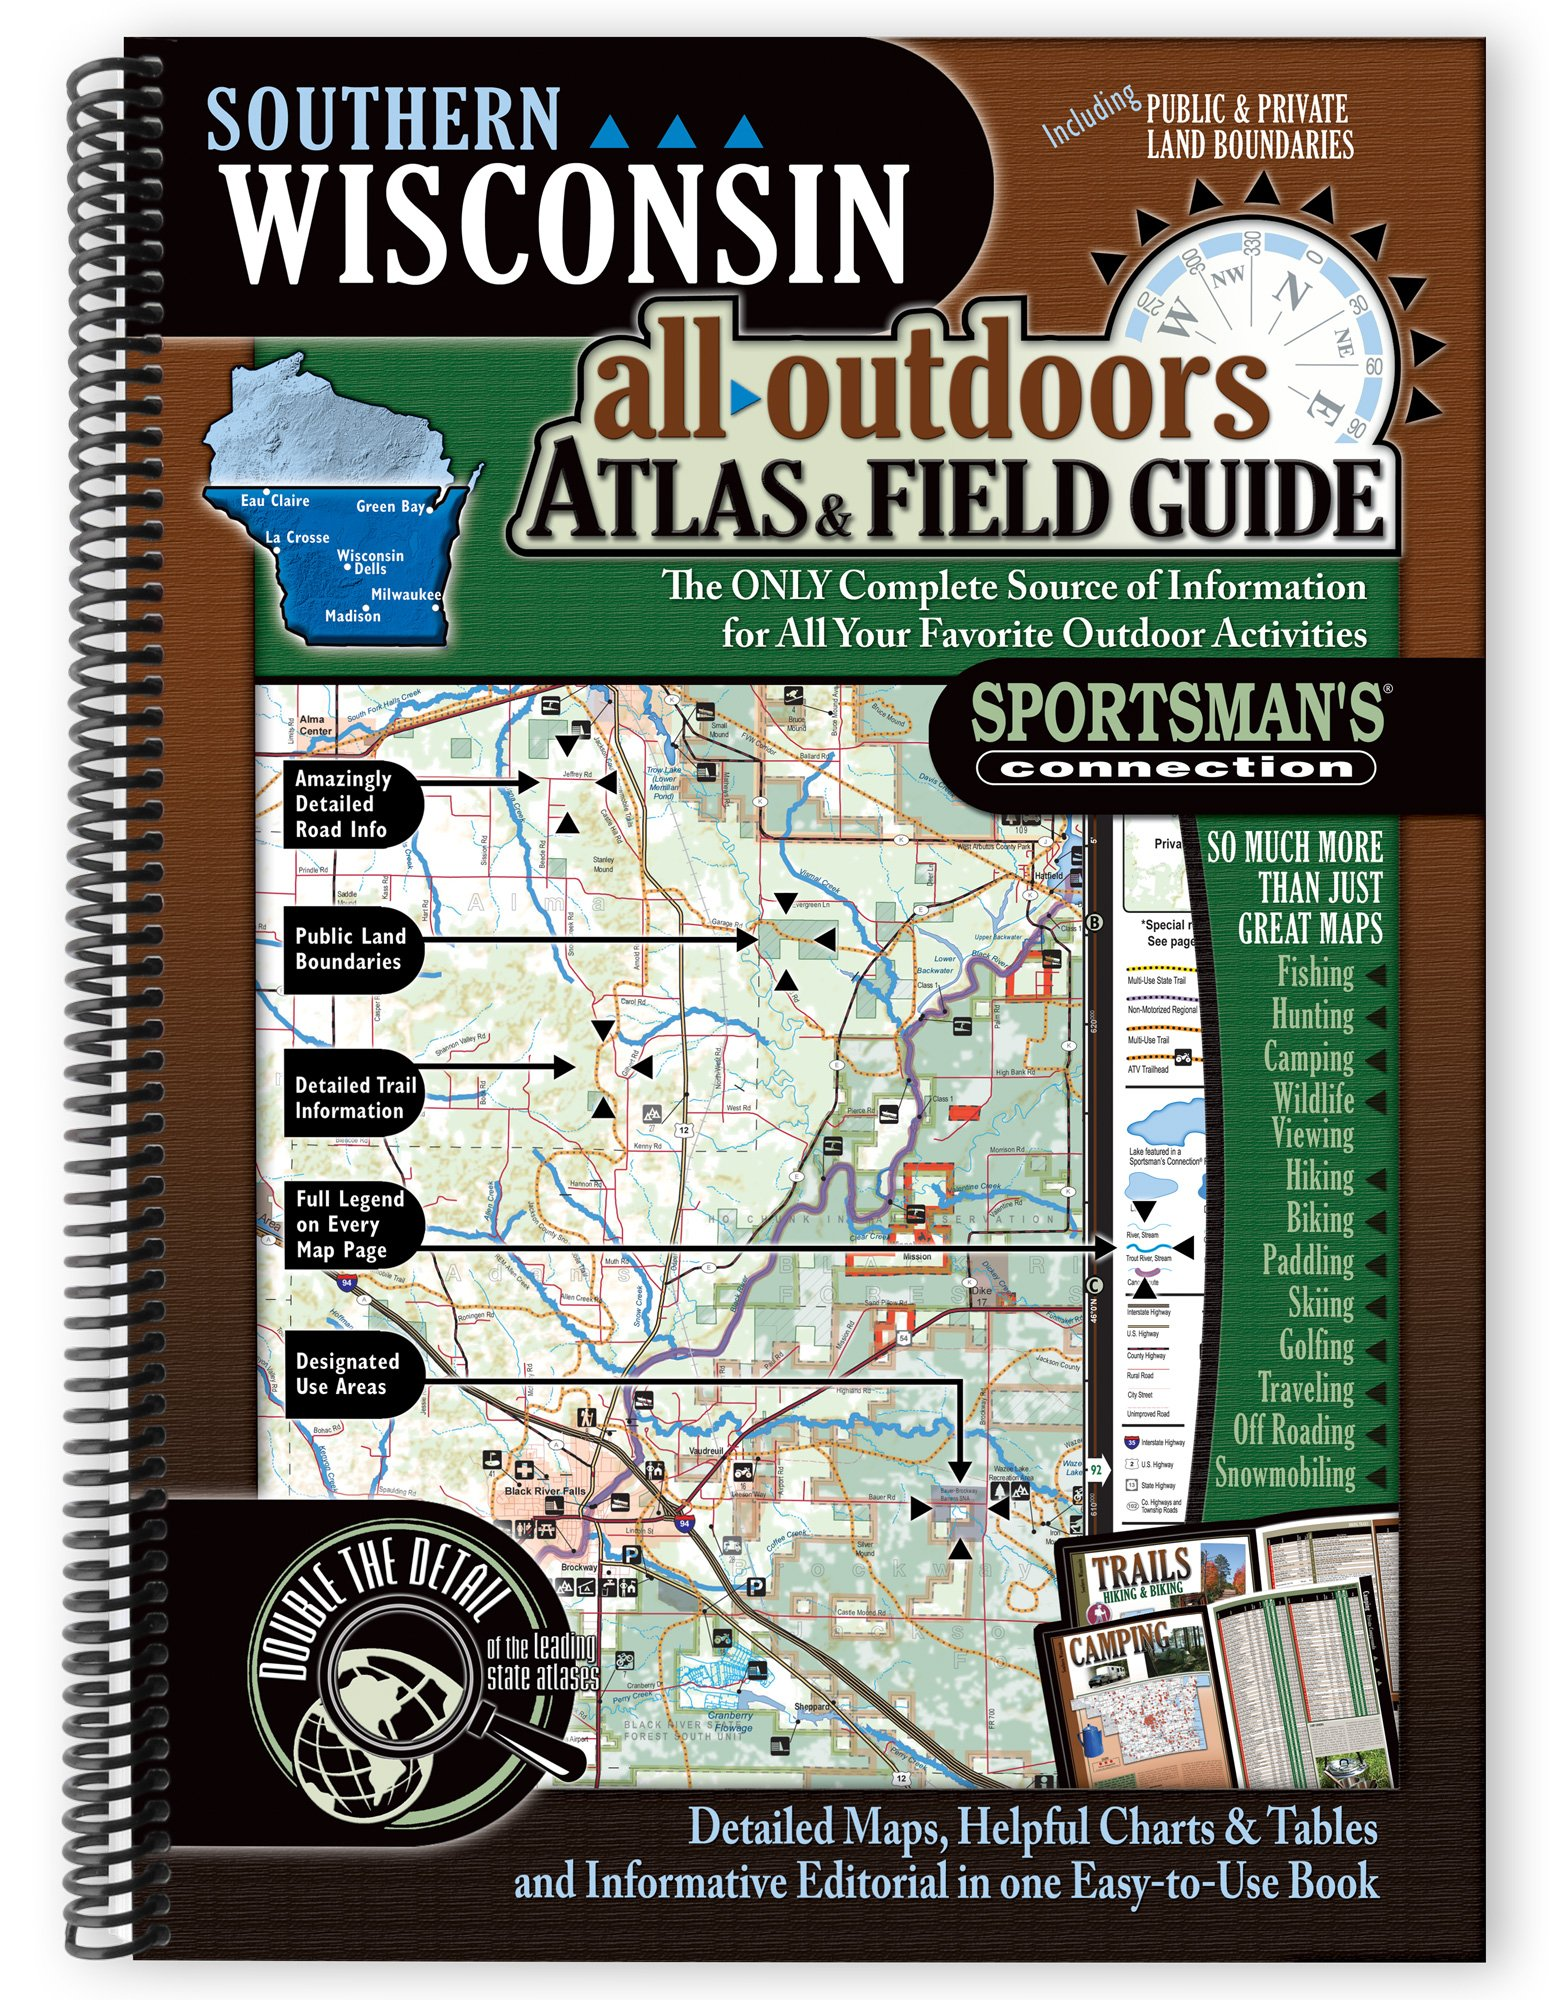 Southern Wisconsin All-Outdoors Atlas & Field Guide pdf